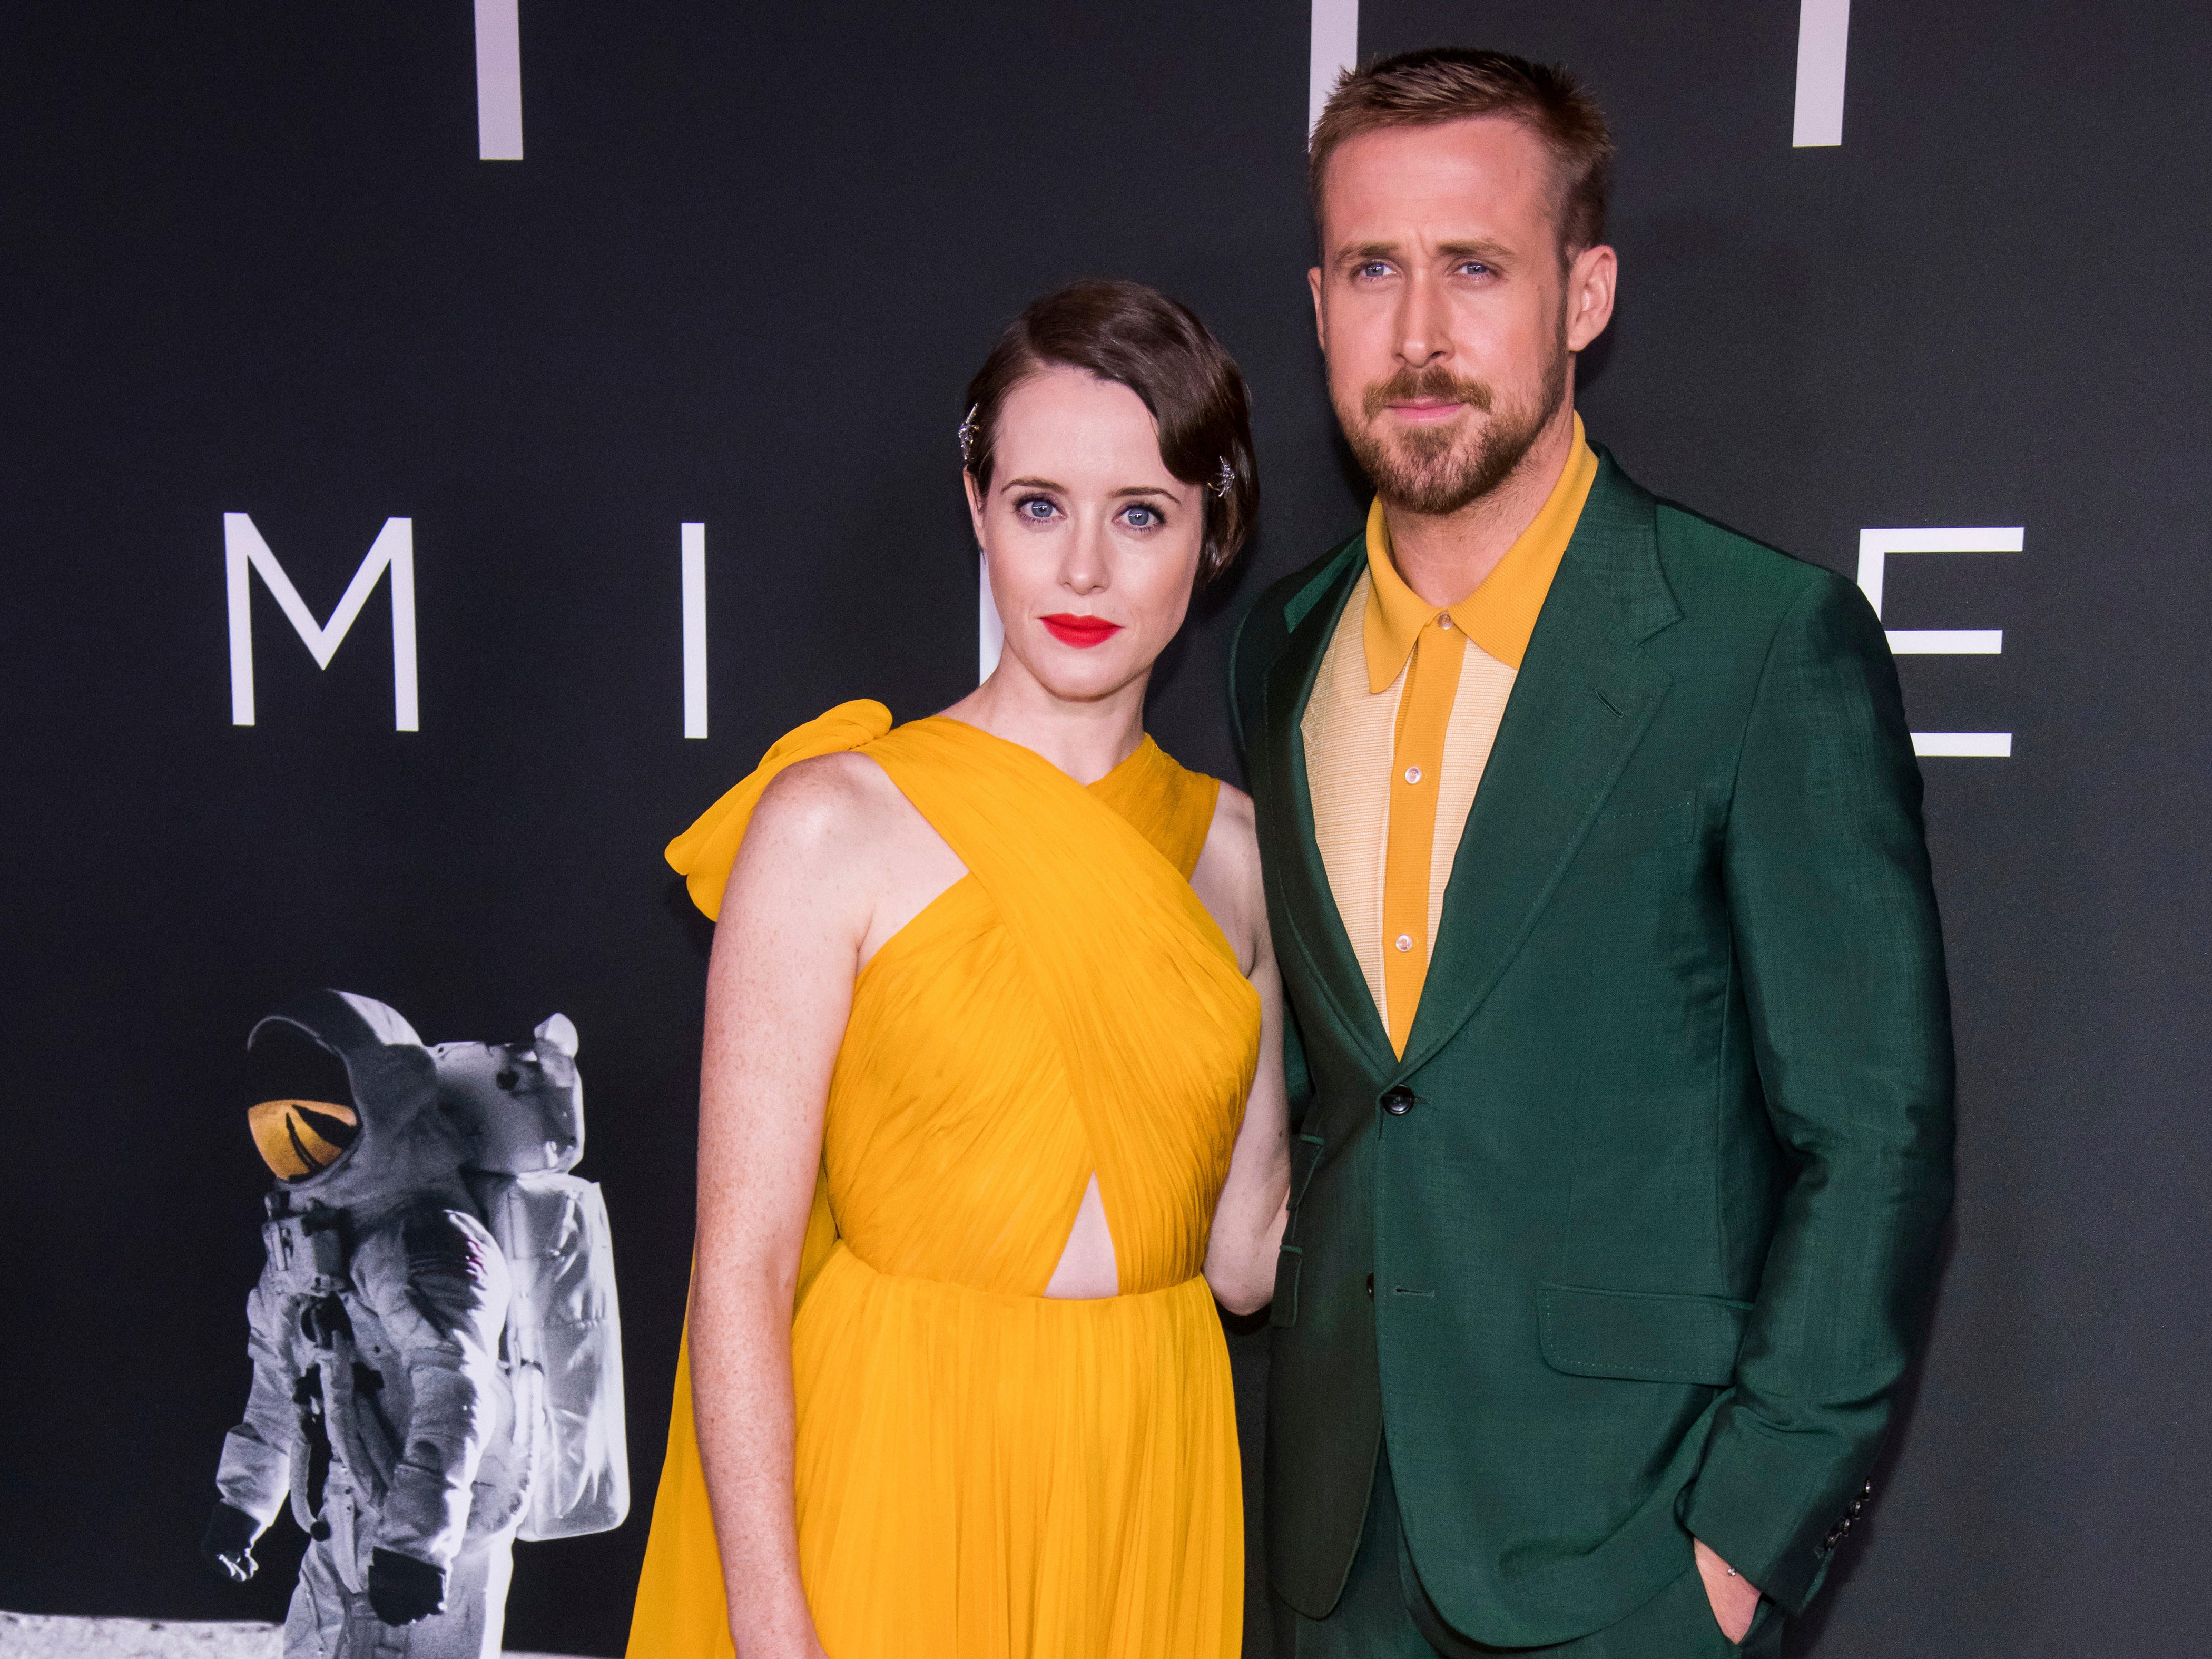 """Claire Foy and Ryan Gosling attend the """"First Man"""" premiere at the National Air and Space Museum of the Smithsonian Institution on Thursday, Oct. 4, 2018, in Washington. (Photo by Charles Sykes/Invision/AP) ORG XMIT: NYCS107"""